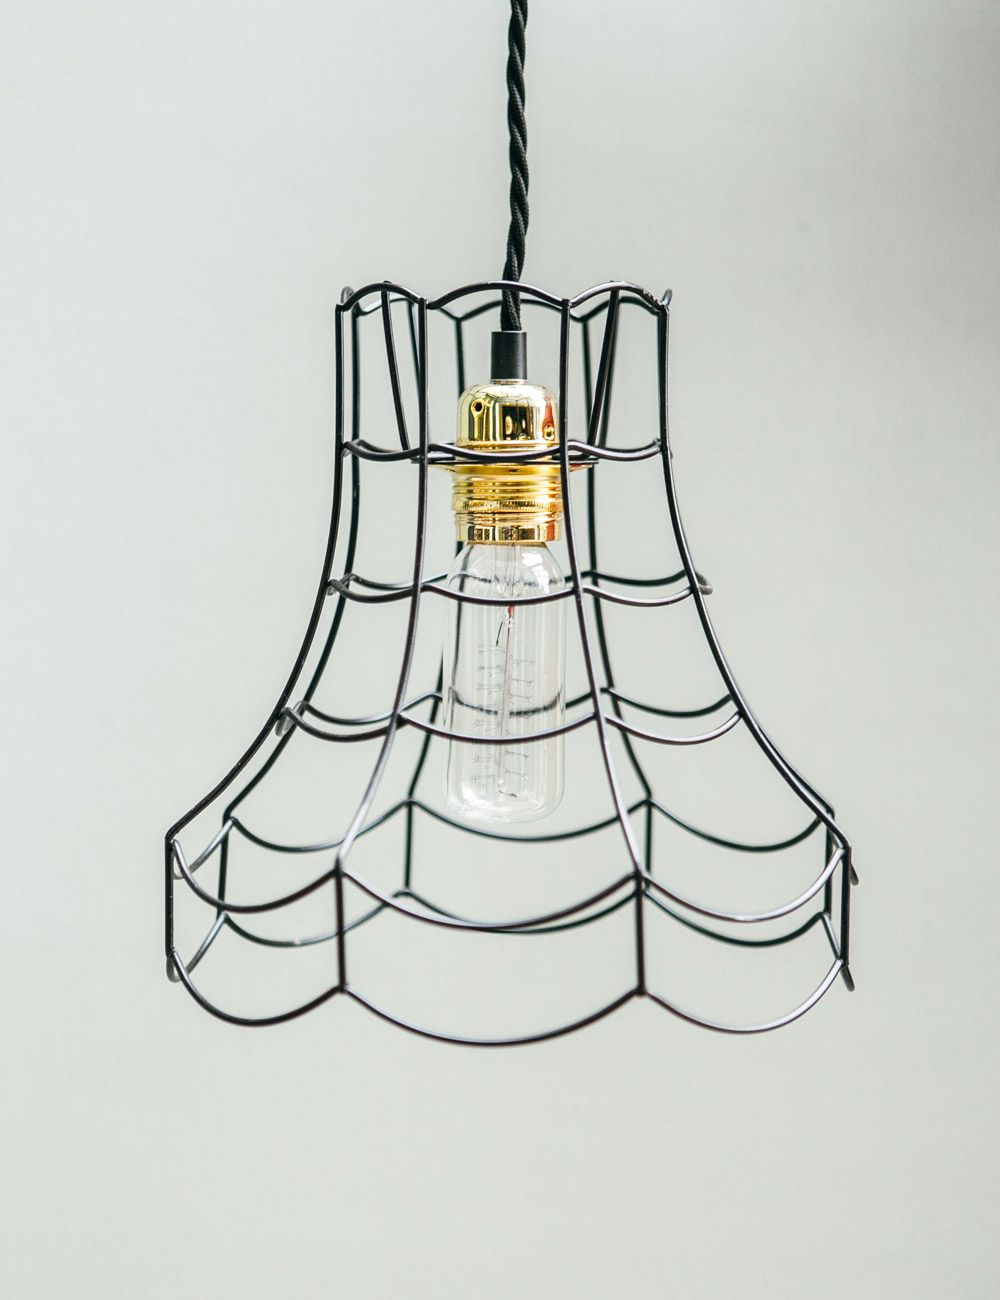 Vintage wire lamp shade home decor pinterest vintage lights buy the vintage wire lampshade online now here at rose grey its vintage semi industrial style will add effortless style to your home greentooth Images